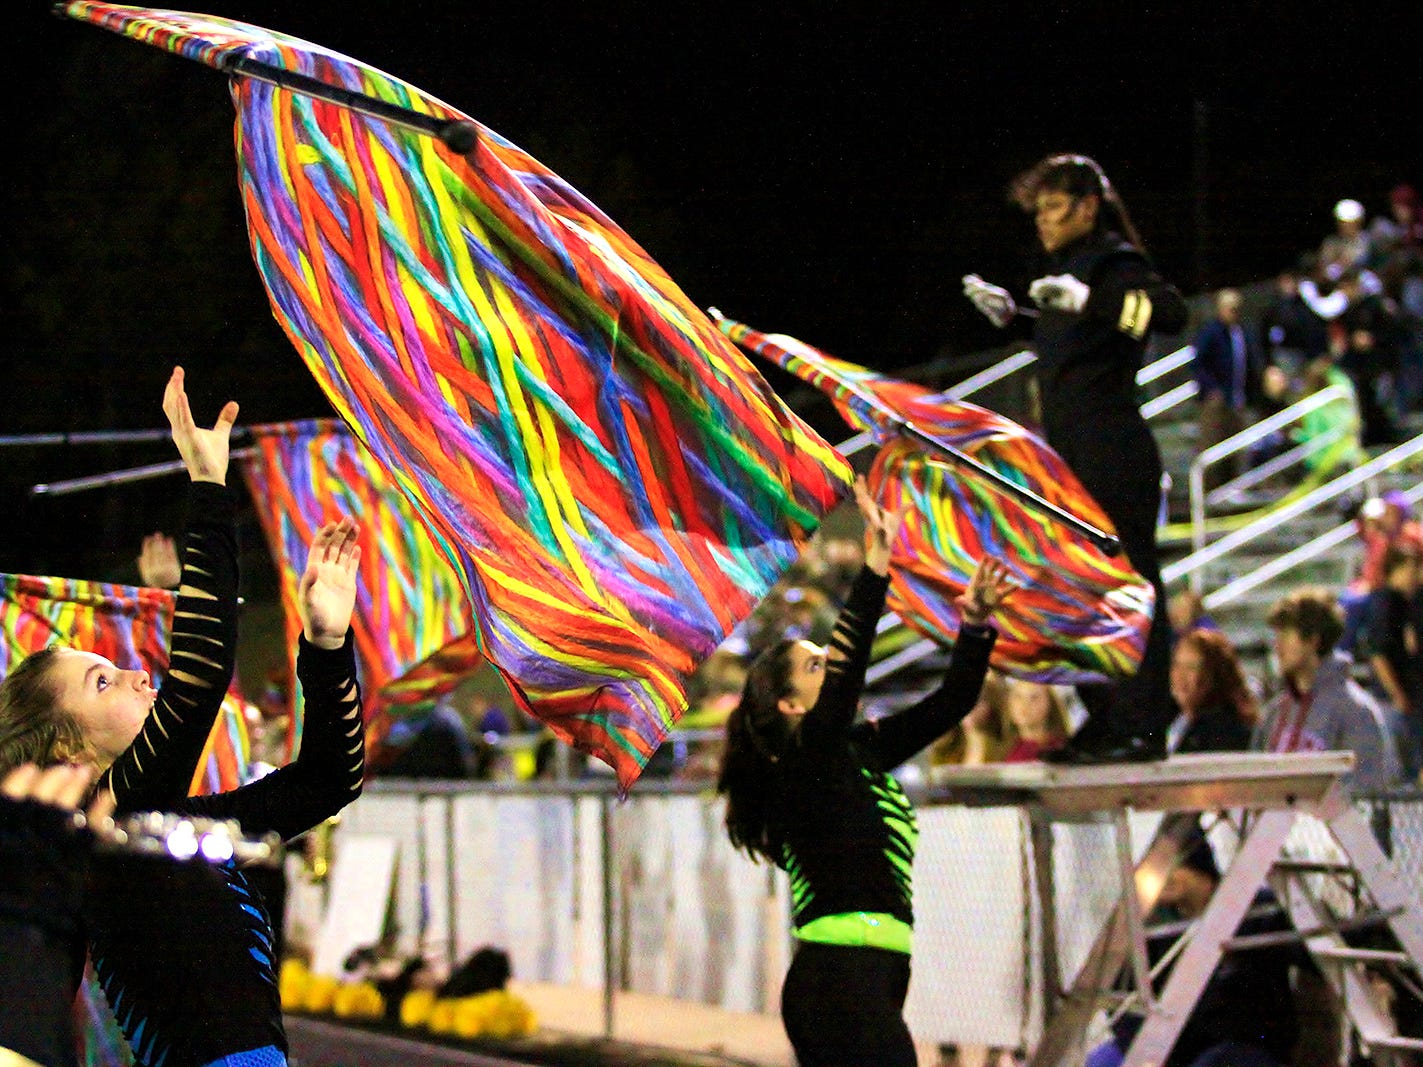 Fairview community raising funds for new band instruments to assist the Fairview High Sound 'O Gold Marching Band. Flag Corp performs November 2, 2018.